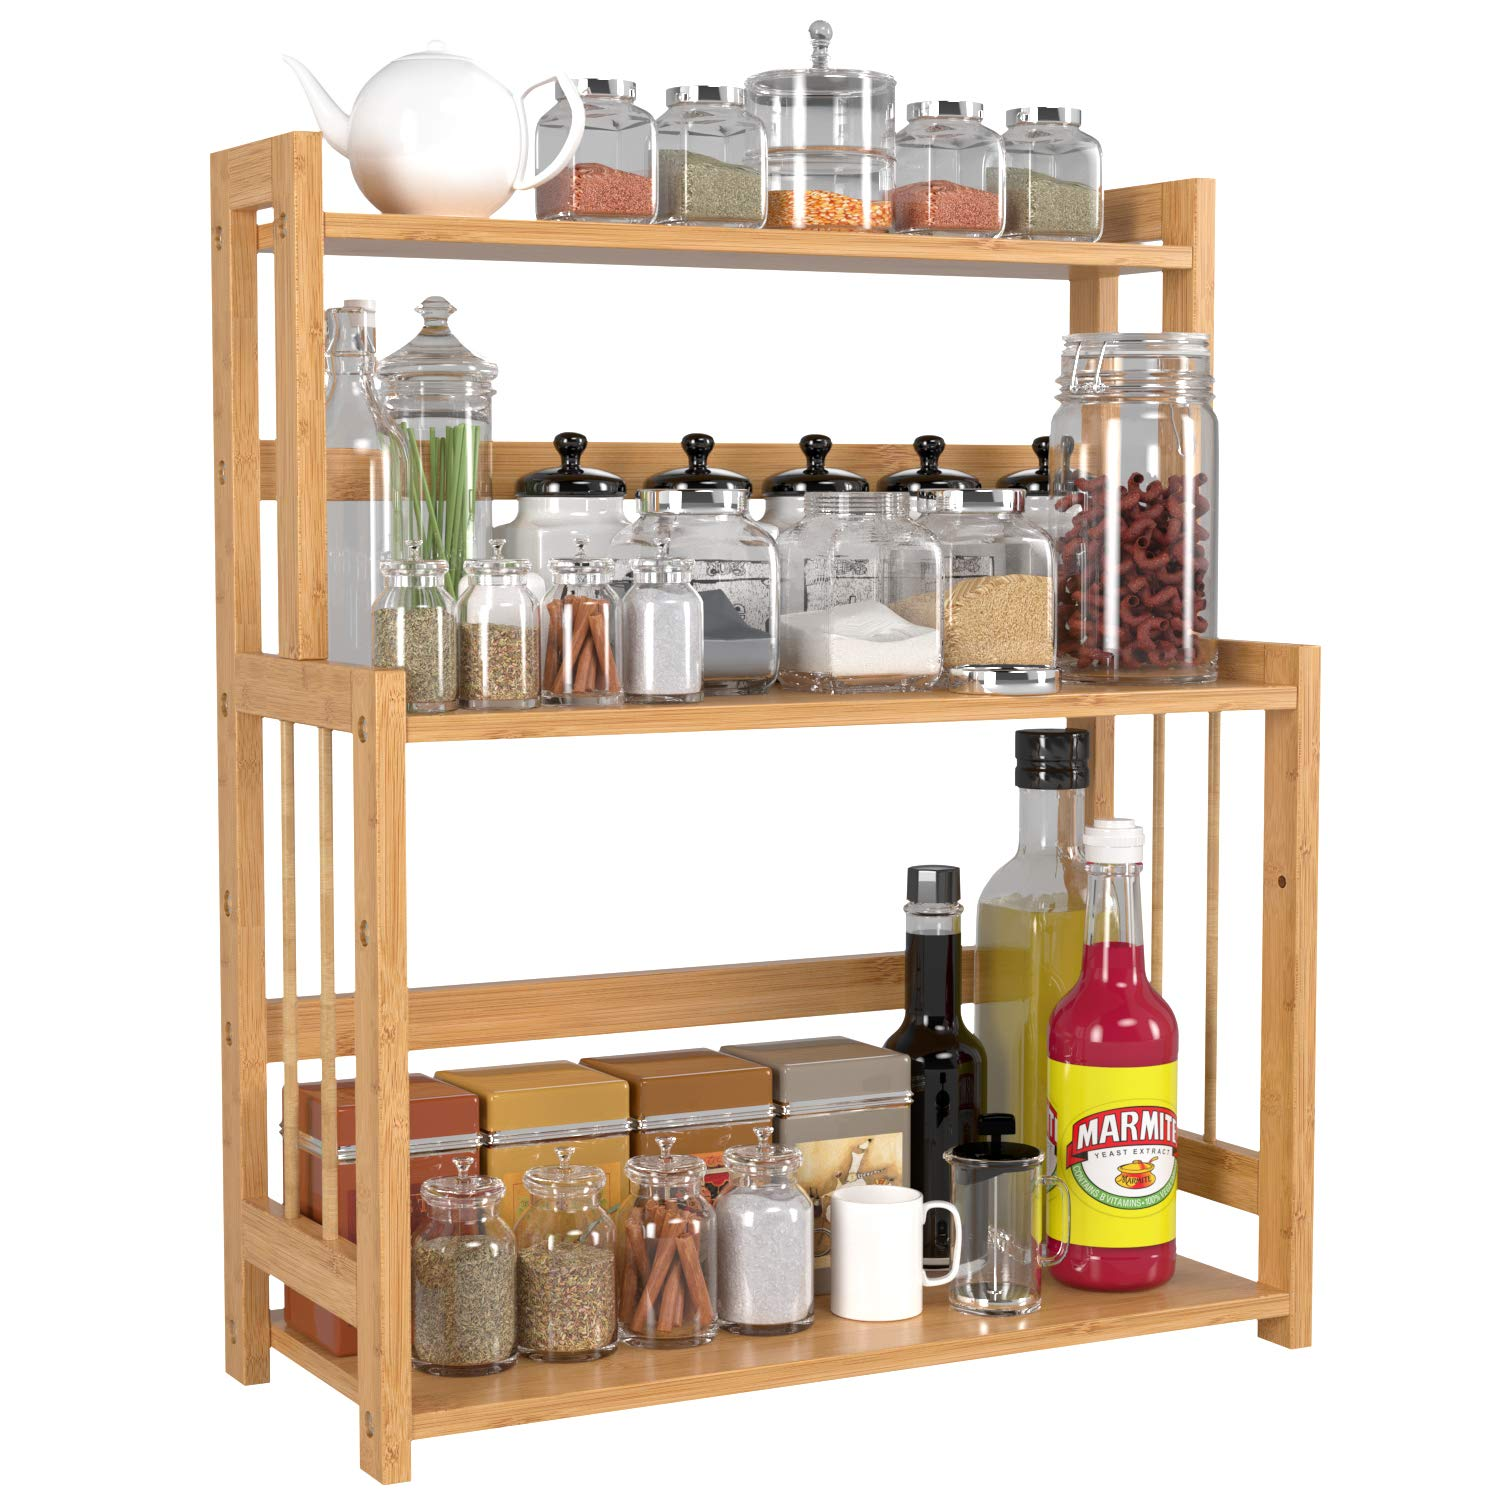 HOMECHO Bamboo Spice Rack Bottle Jars Holder Countertop Storage Organizer Free Standing with 3-Tier Adjustable Slim Shelf for Kitchen Bathroom Bedroom HMC-BA-004 by HOMECHO